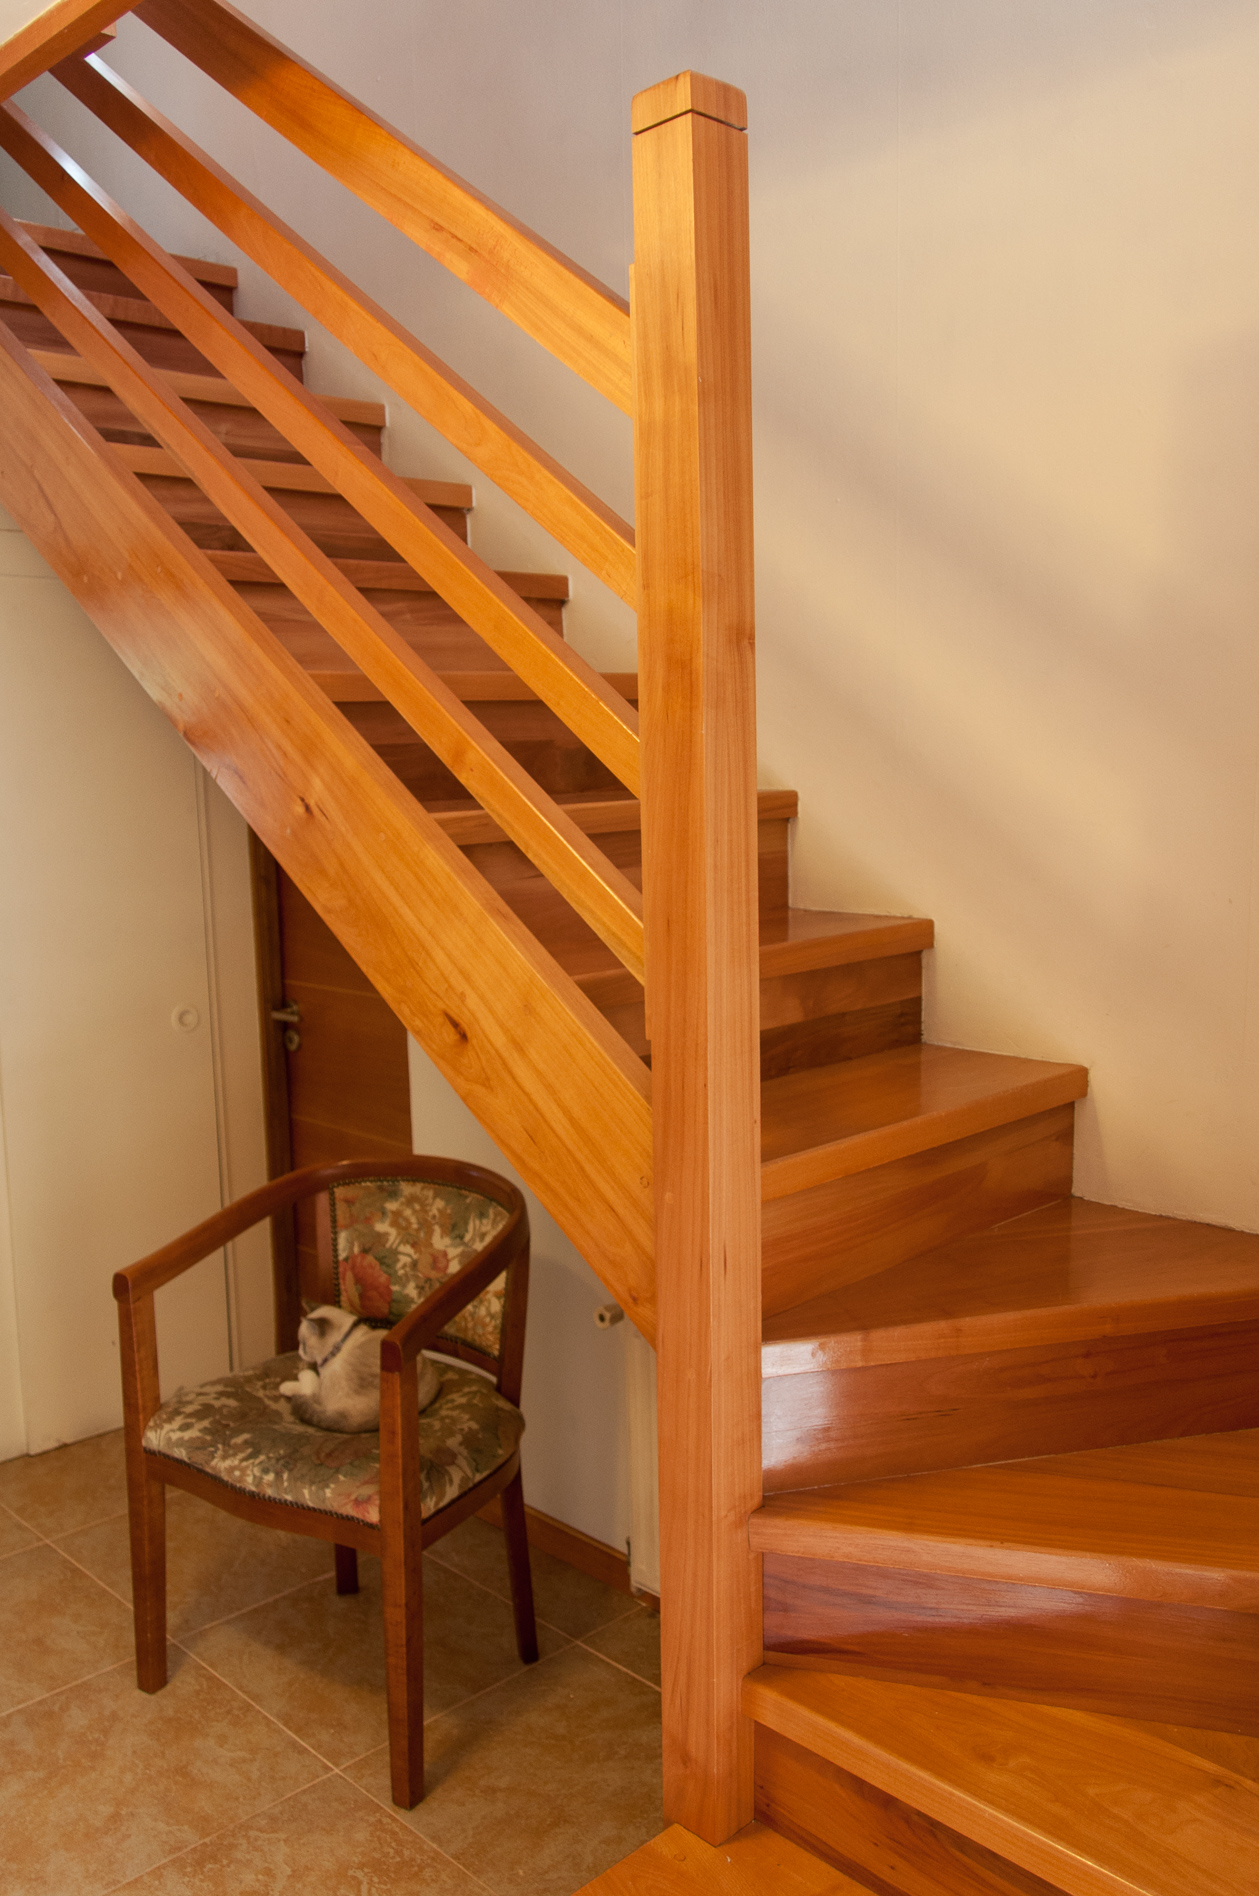 Como hacer escalera de madera ideas de disenos for Construir escalera de madera